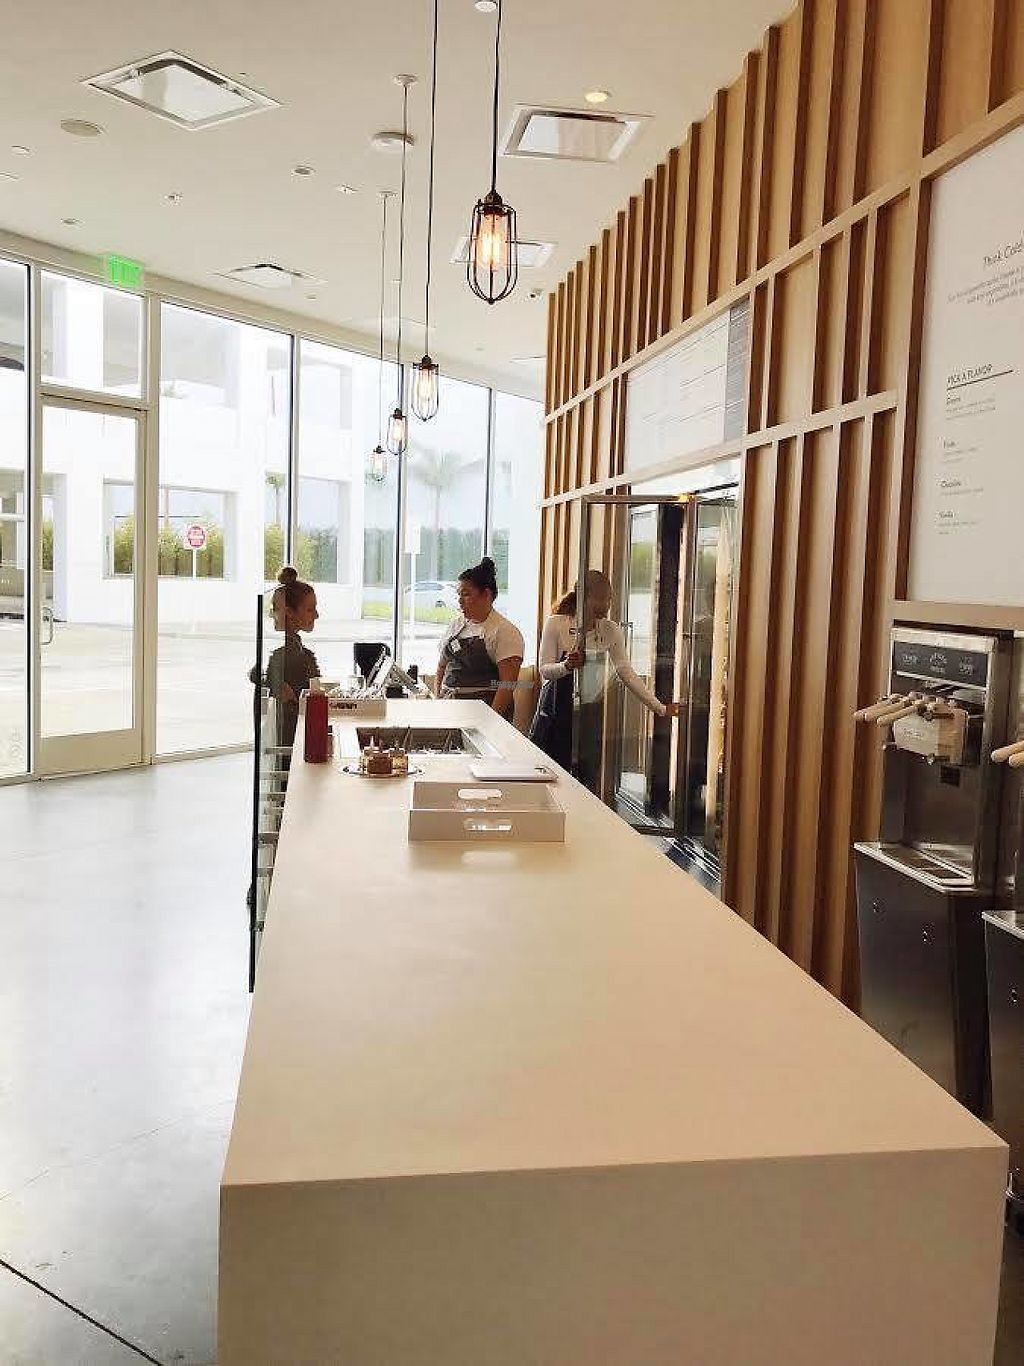 "Photo of Pressed Juicery  by <a href=""/members/profile/community5"">community5</a> <br/>Torrance <br/> March 17, 2017  - <a href='/contact/abuse/image/88822/237657'>Report</a>"